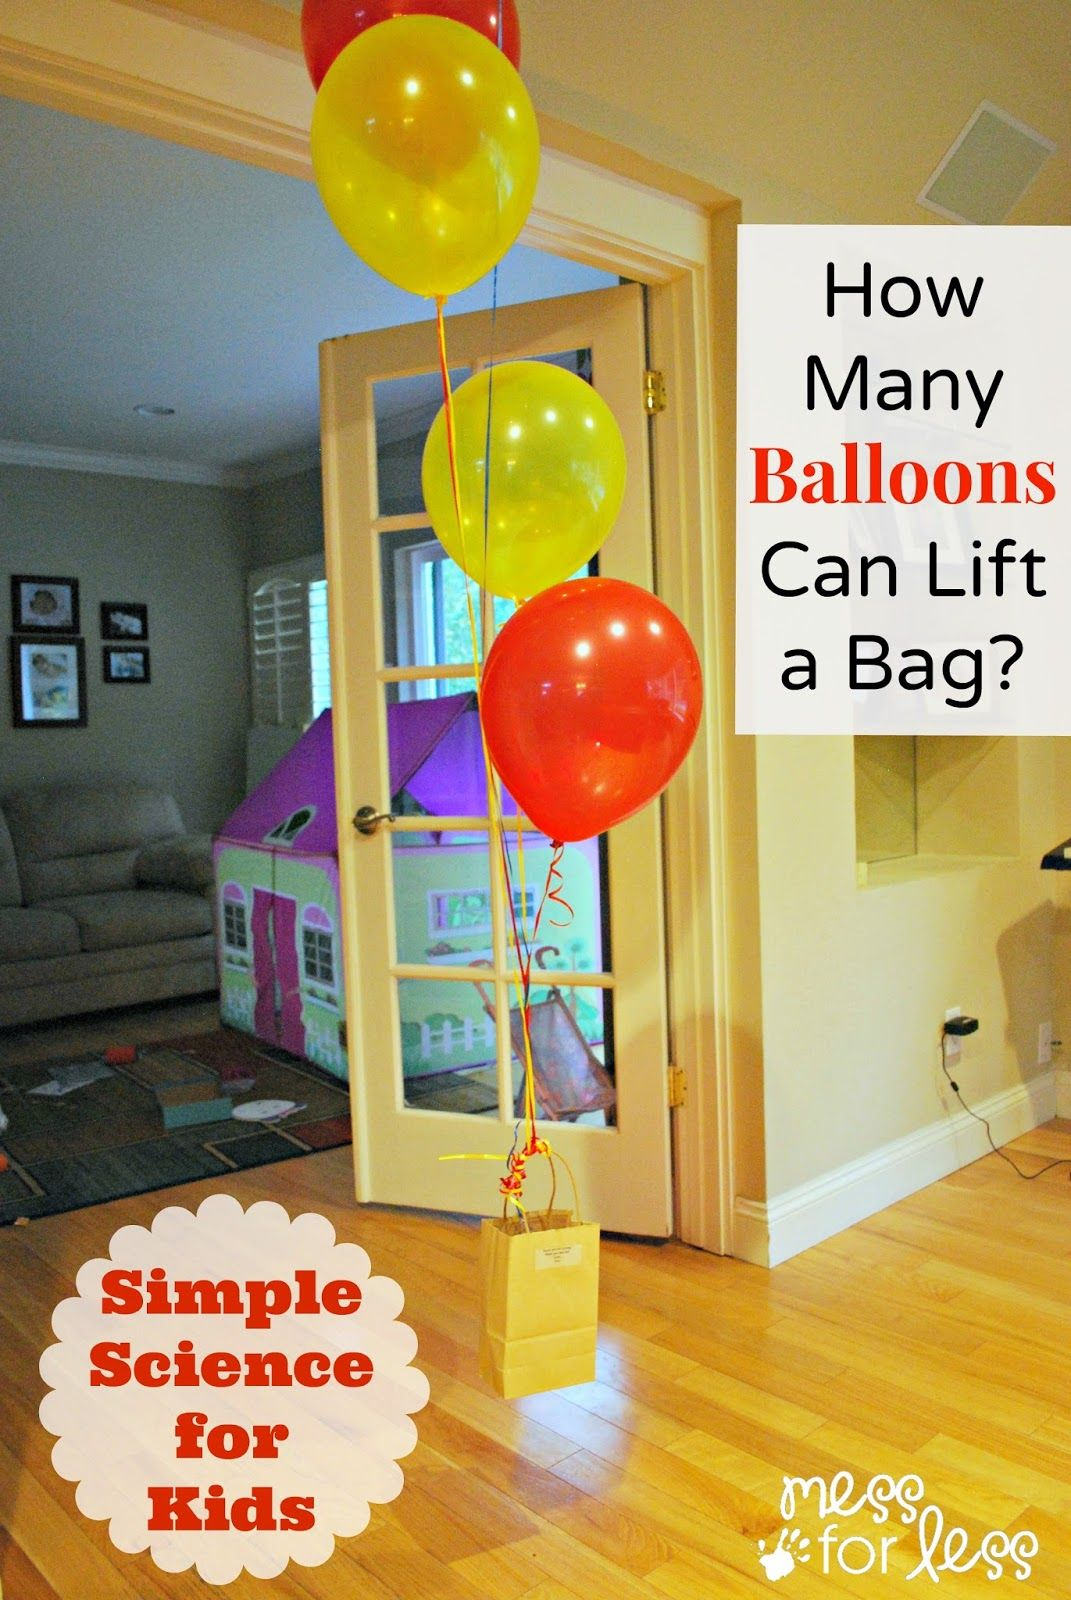 Simple Science How Many Balloons Can Lift Each Item